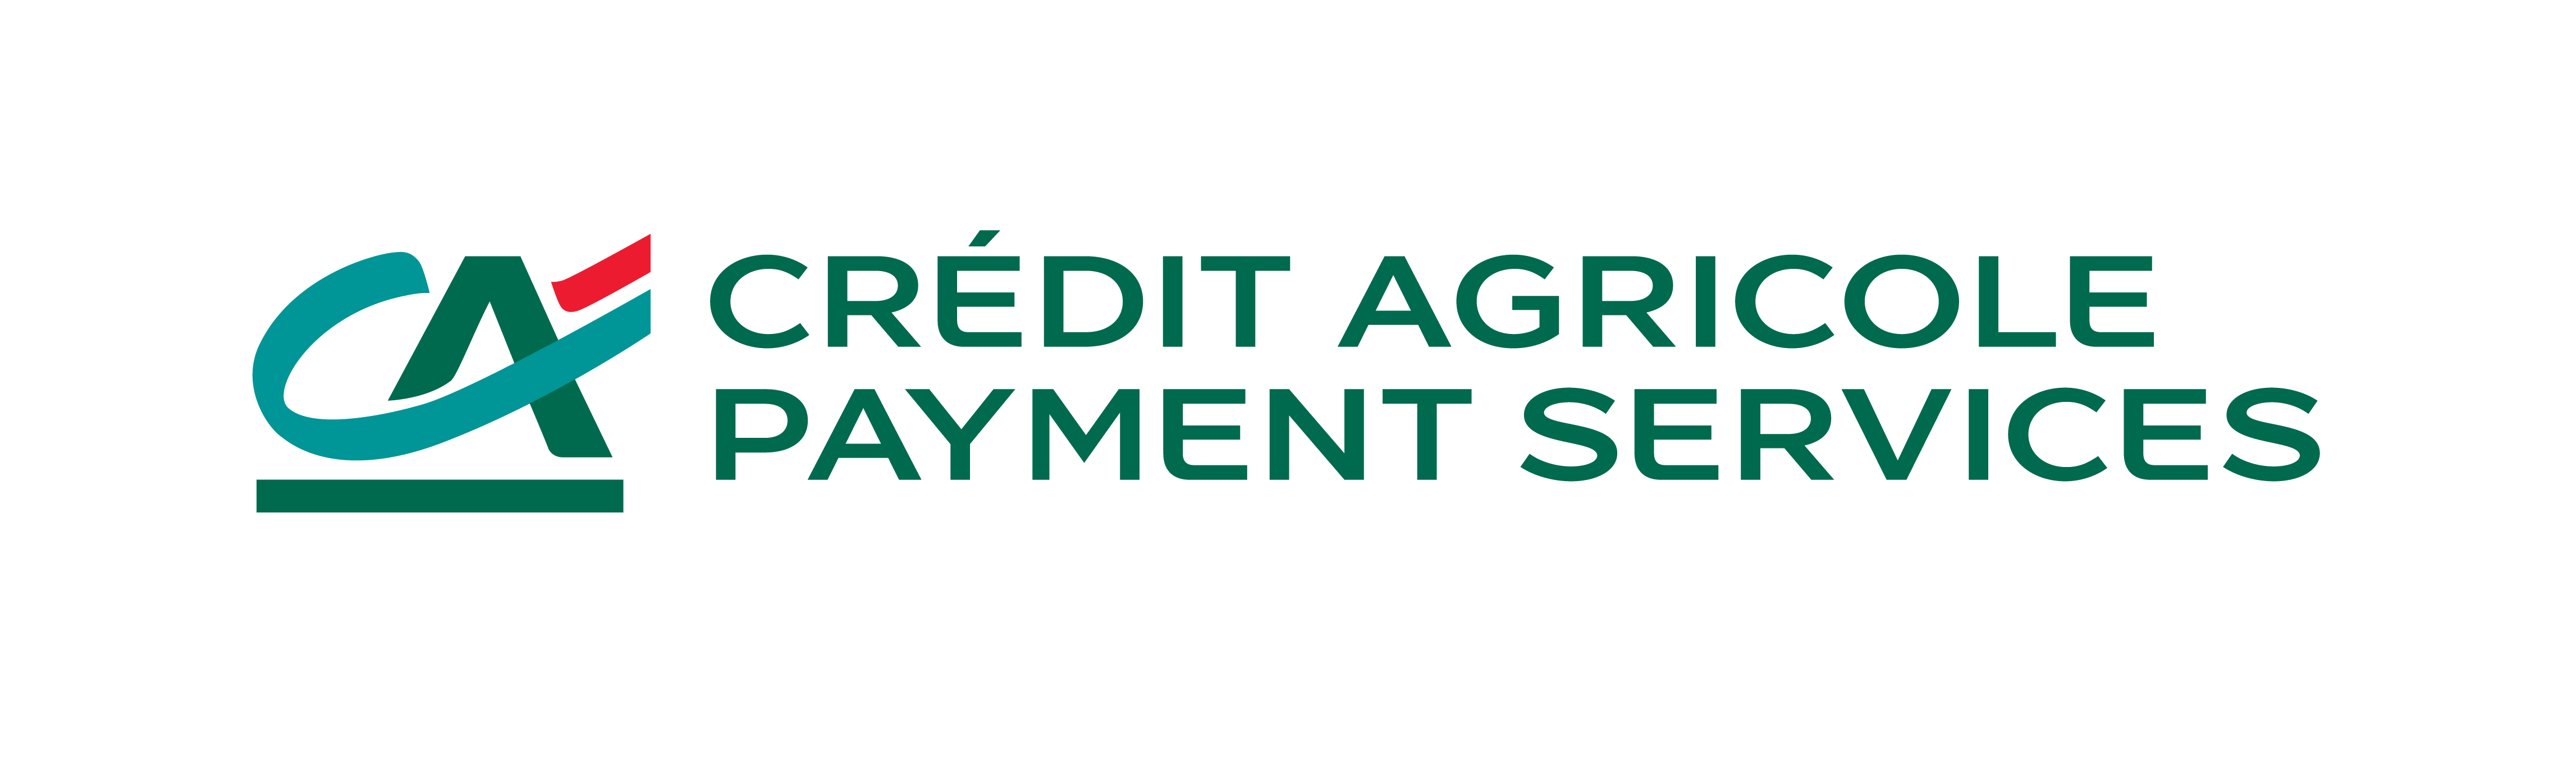 CREDIT AGRICOLE PAYMENT SERVICES